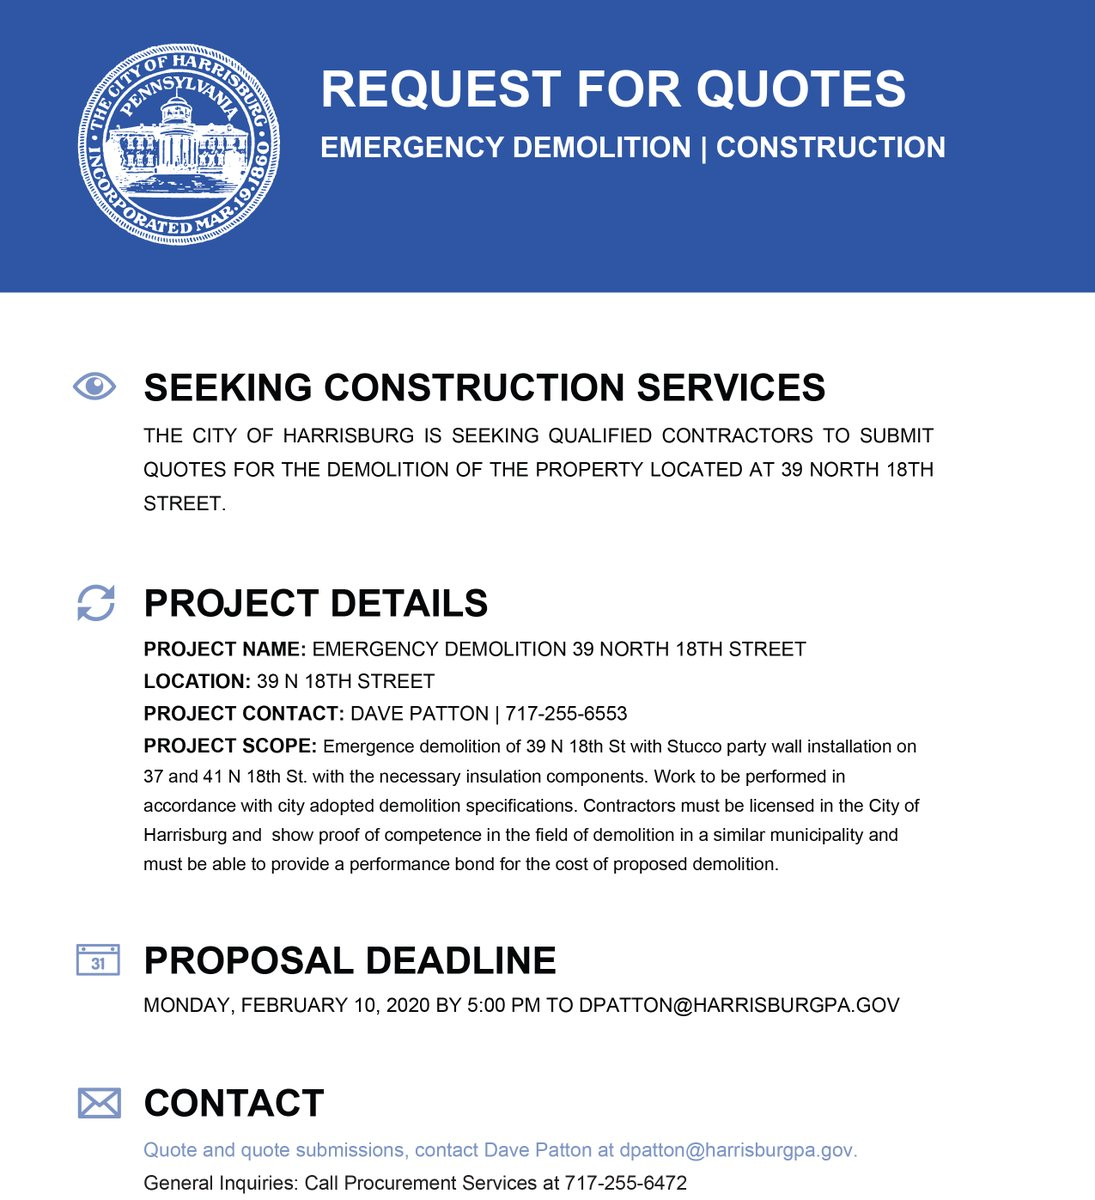 REQUEST FOR QUOTES EMERGENCY DEMOLITION   CONSTRUCTION